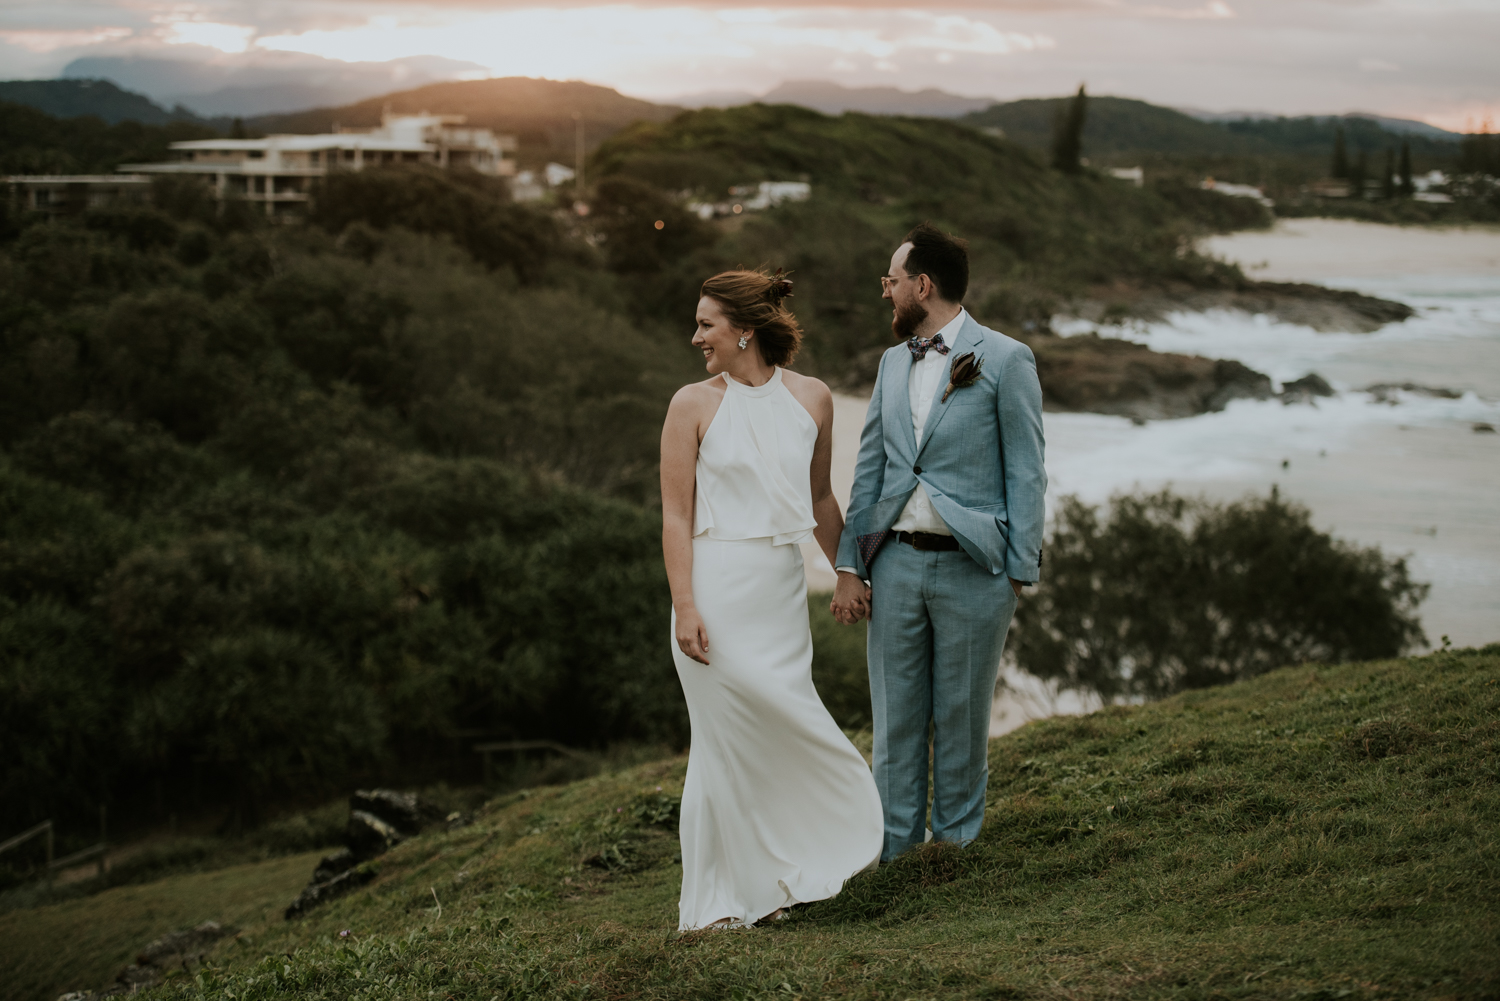 Brisbane Wedding Photographer | Tweed Coast Elopement Photography-74.jpg